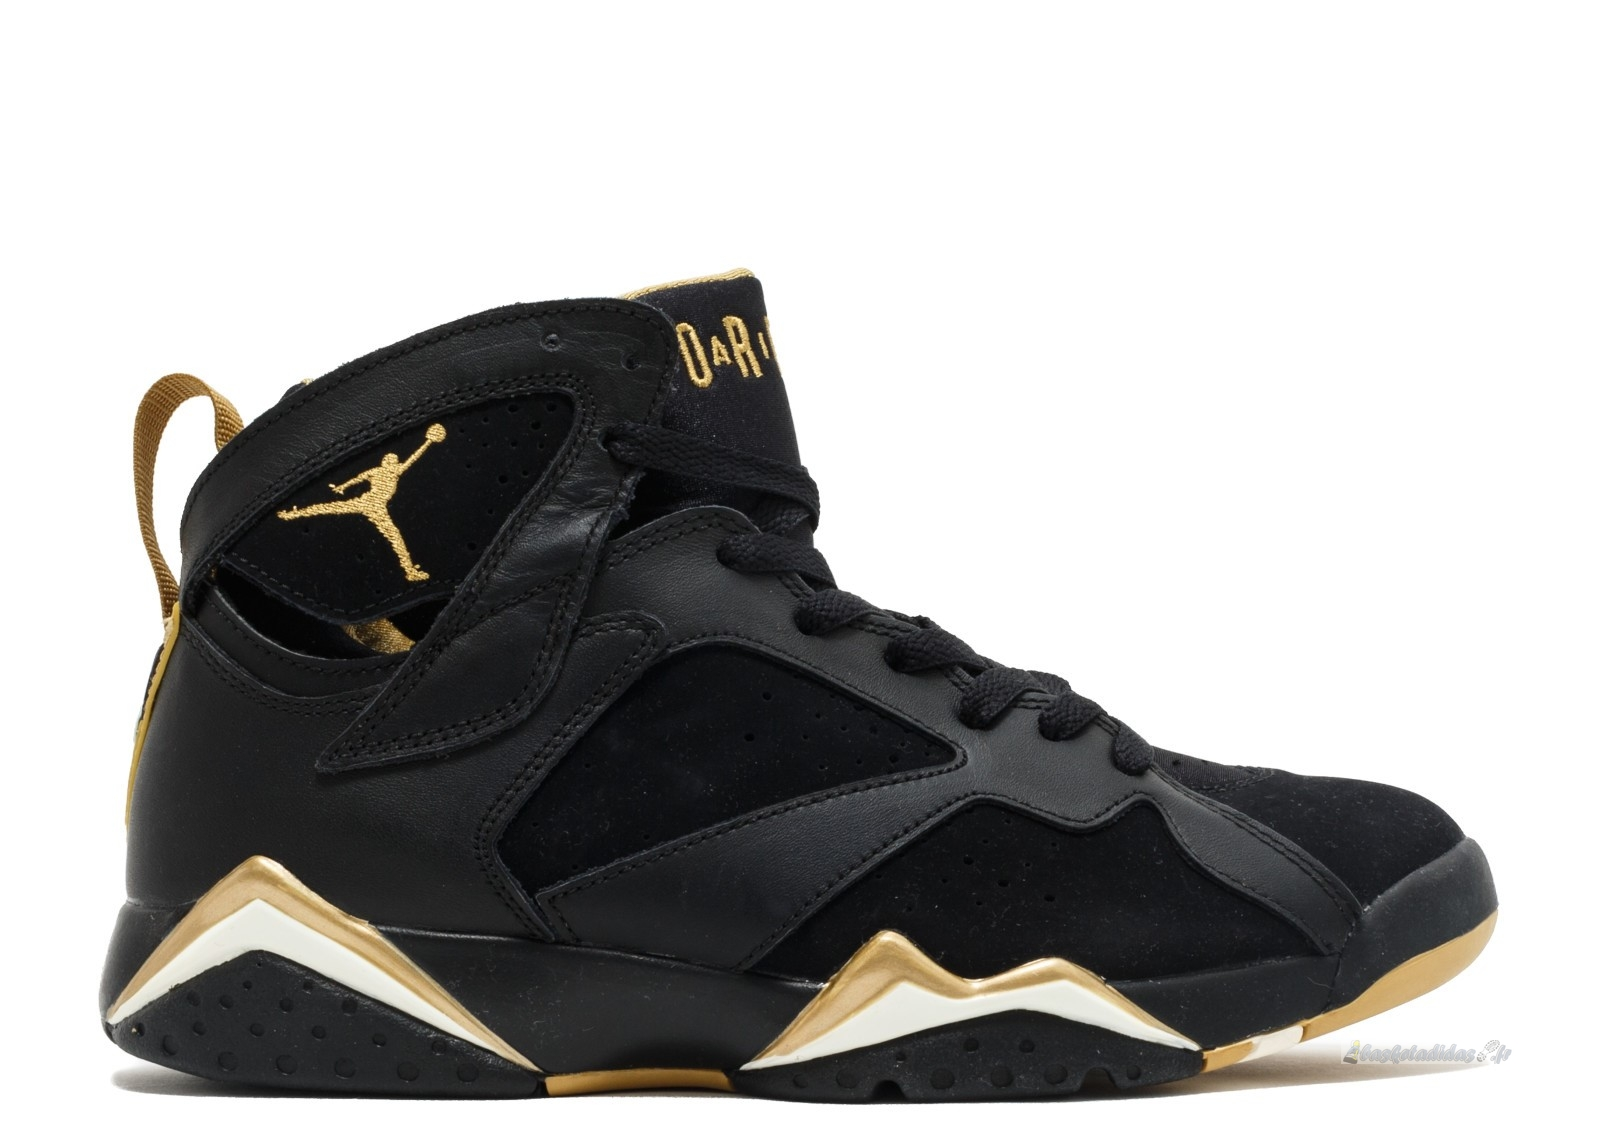 "Chaussure de Basket Air Jordan 7 Retro ""Golden Moments Package"" Noir Or (304775-030)"